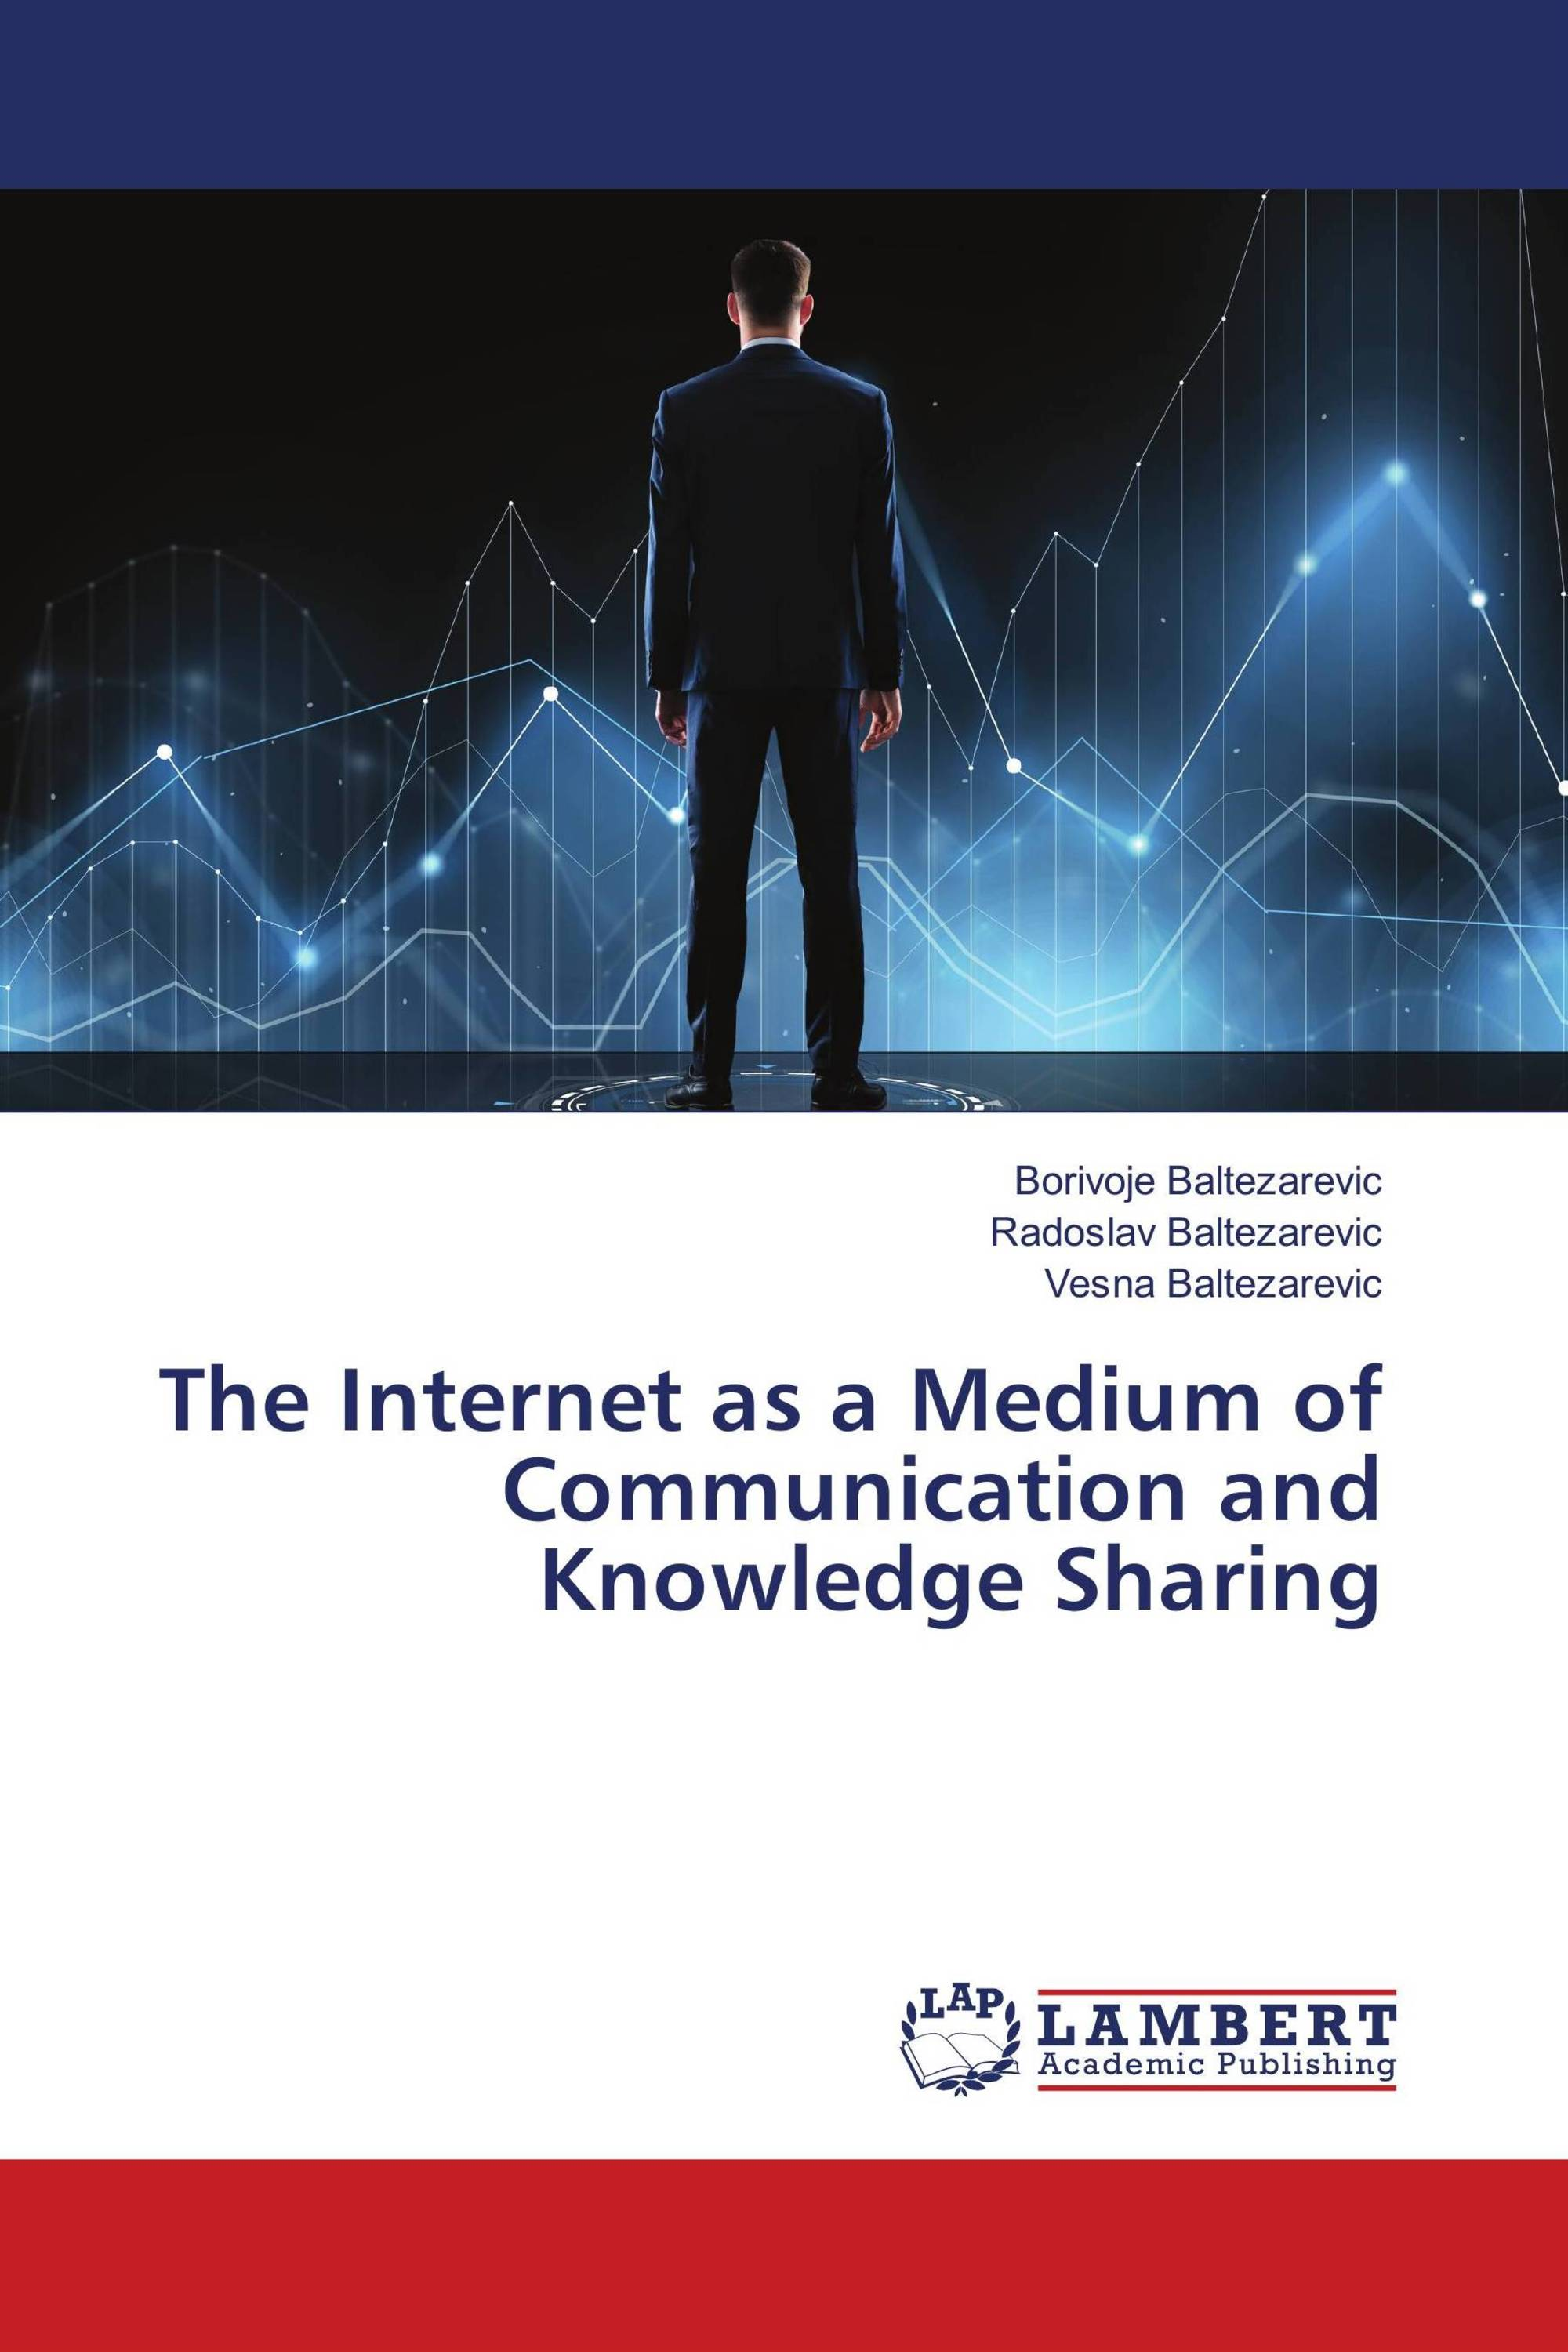 The Internet as a Medium of Communication and Knowledge